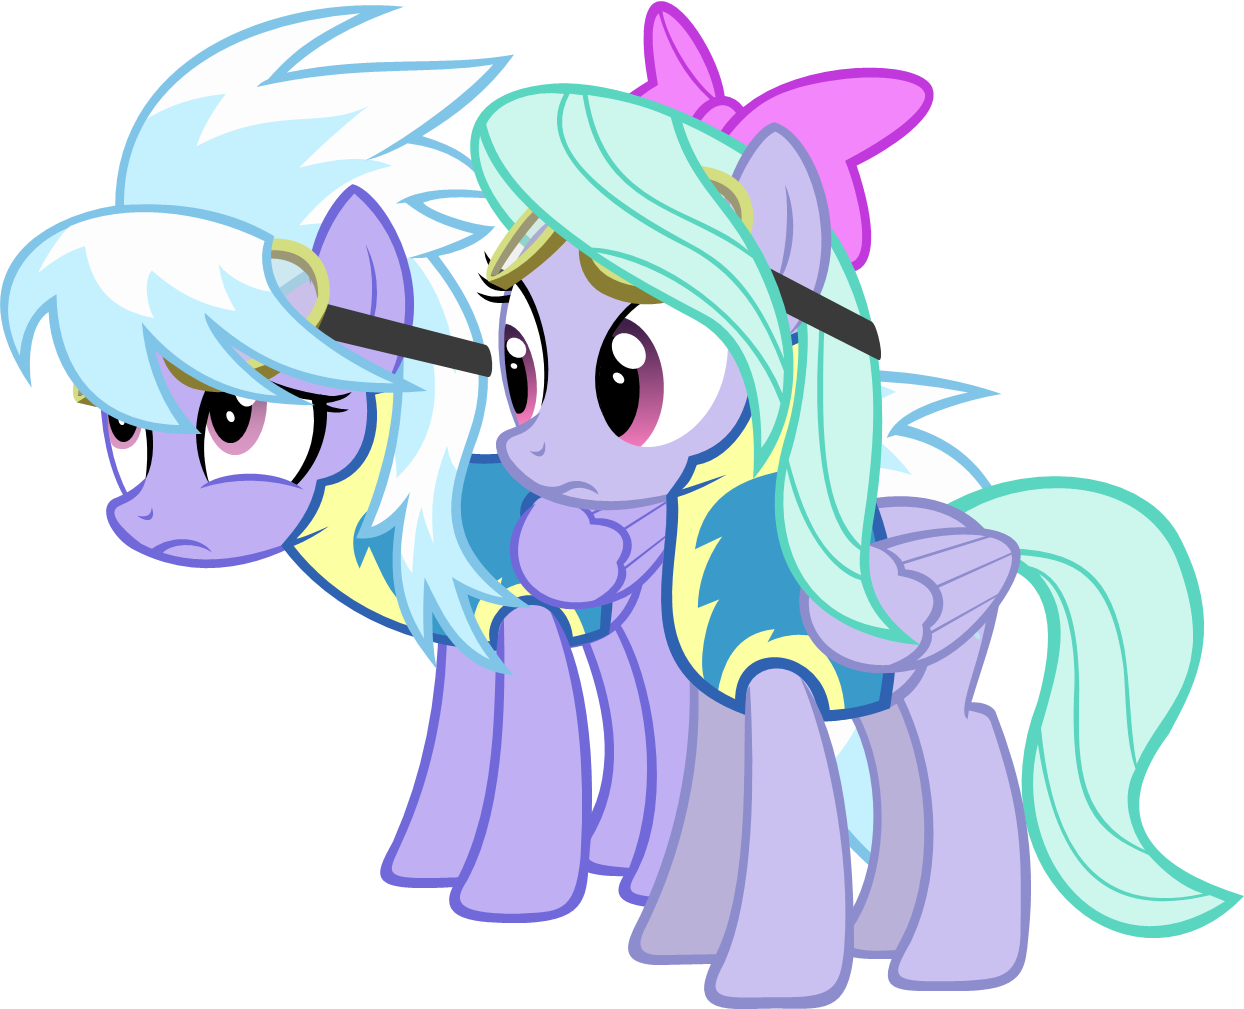 Filly Cloudchaser by PaulySentry on DeviantArt